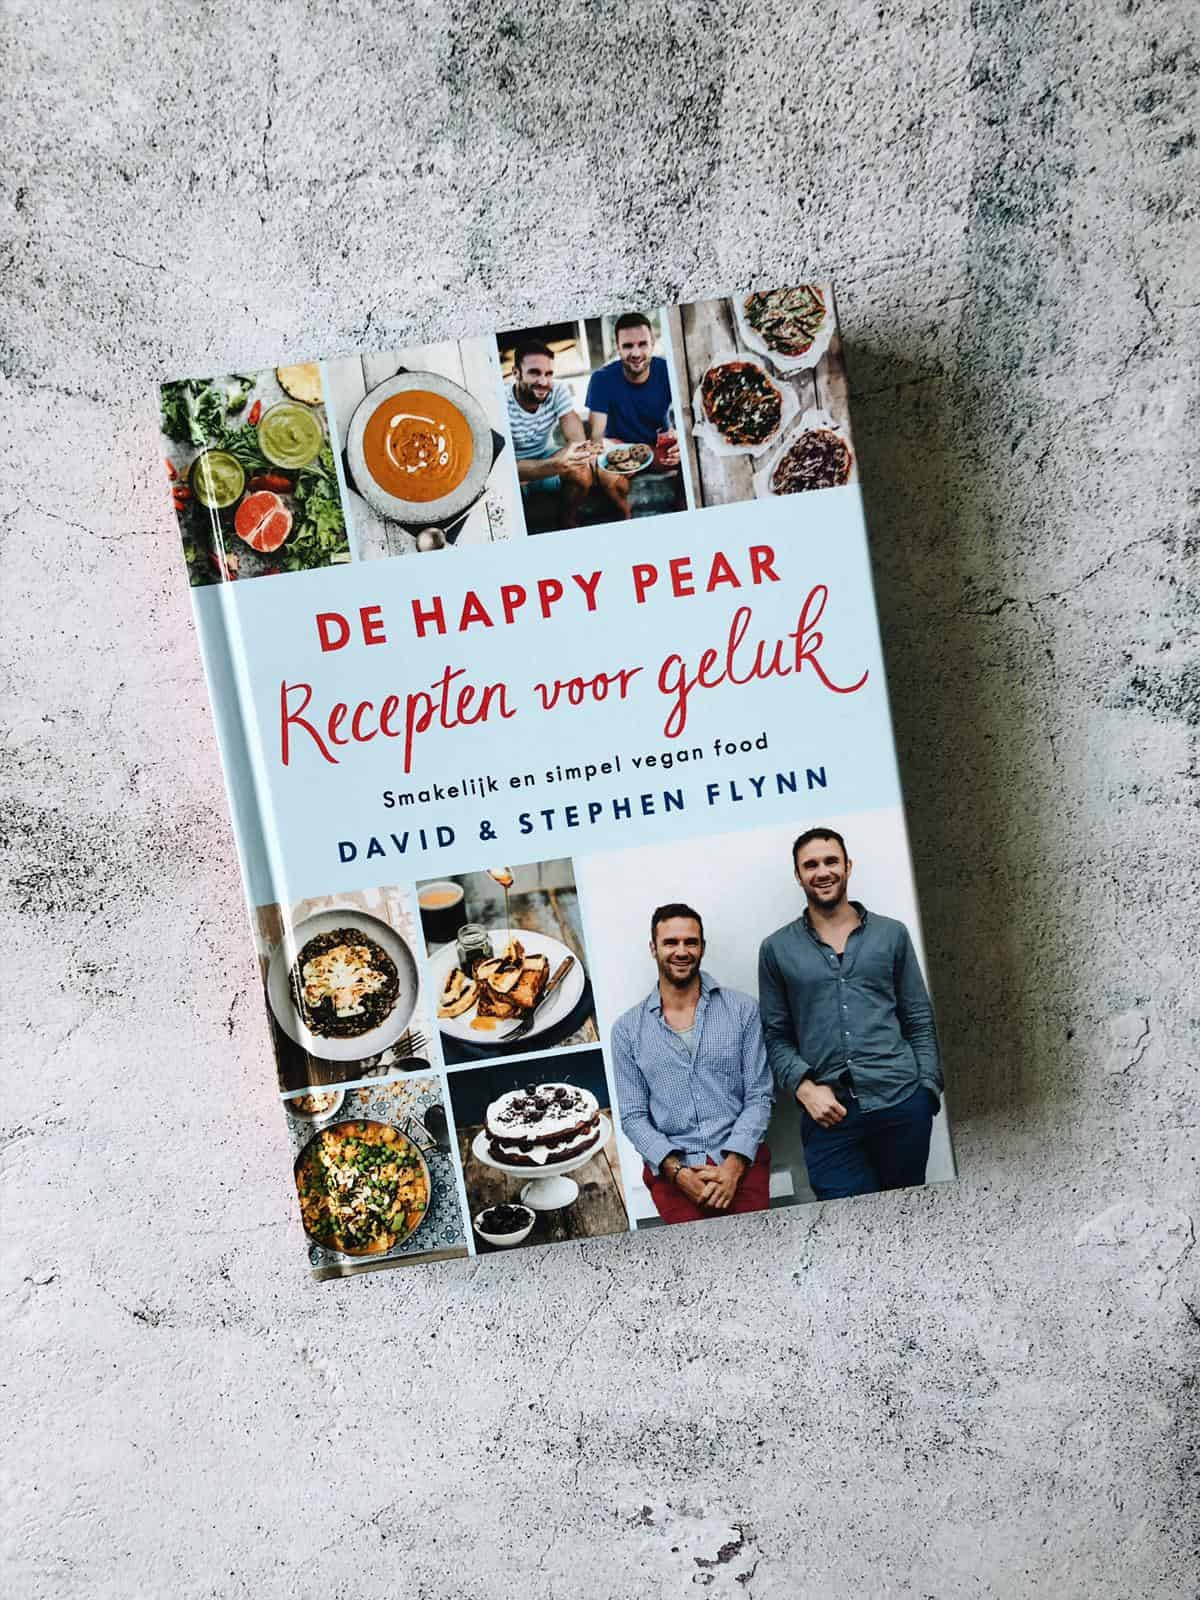 Kookboek review: Happy Pear, smakelijk en simpel vegan food